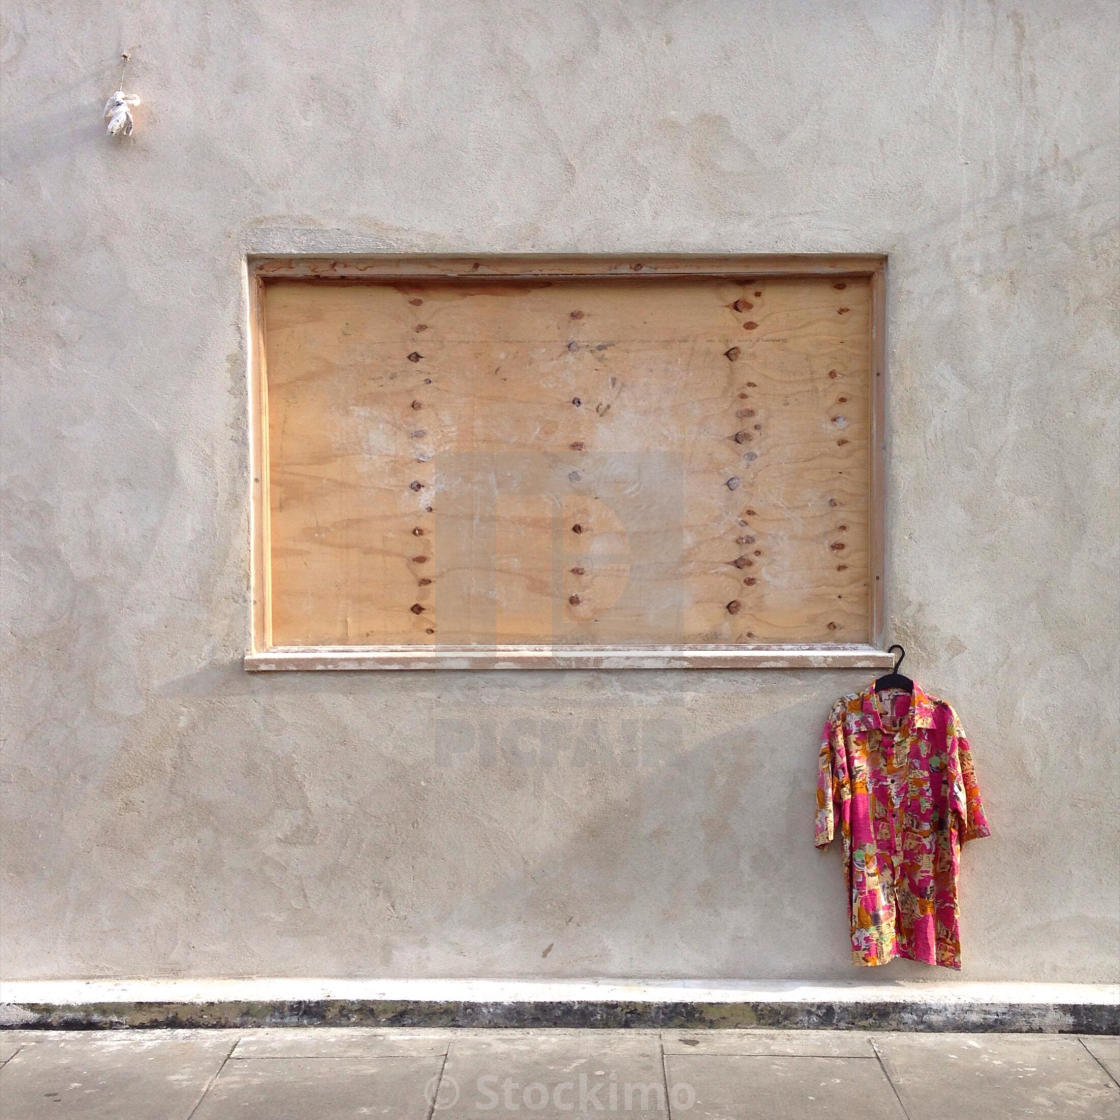 """A Hawaiian shirt hanging from a boarded up window in Clarence Rd, Hackney, London"" stock image"